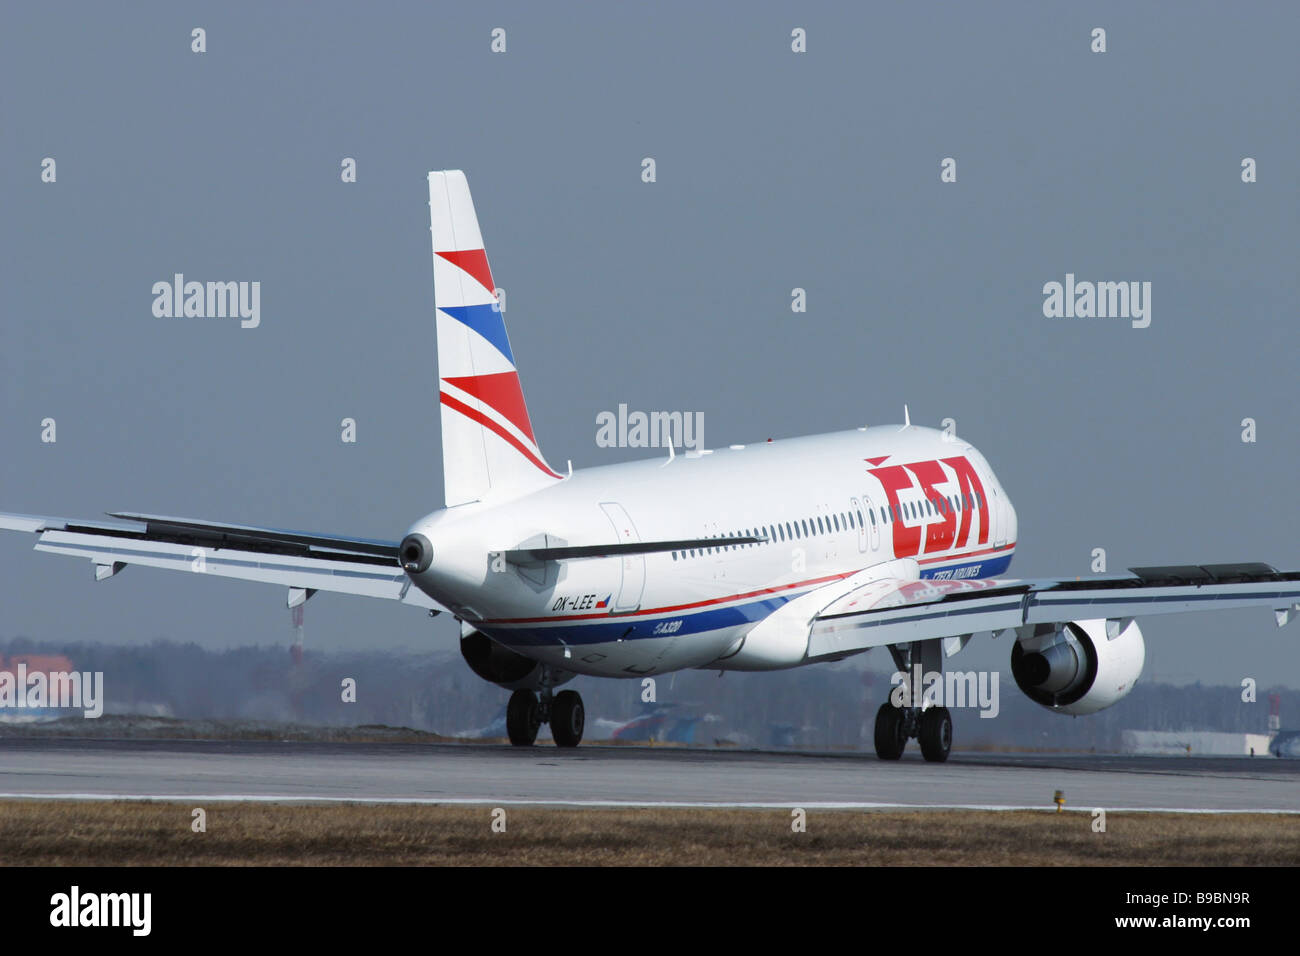 An Airbus A320 passenger airliner at Sheremetyevo airport - Stock Image